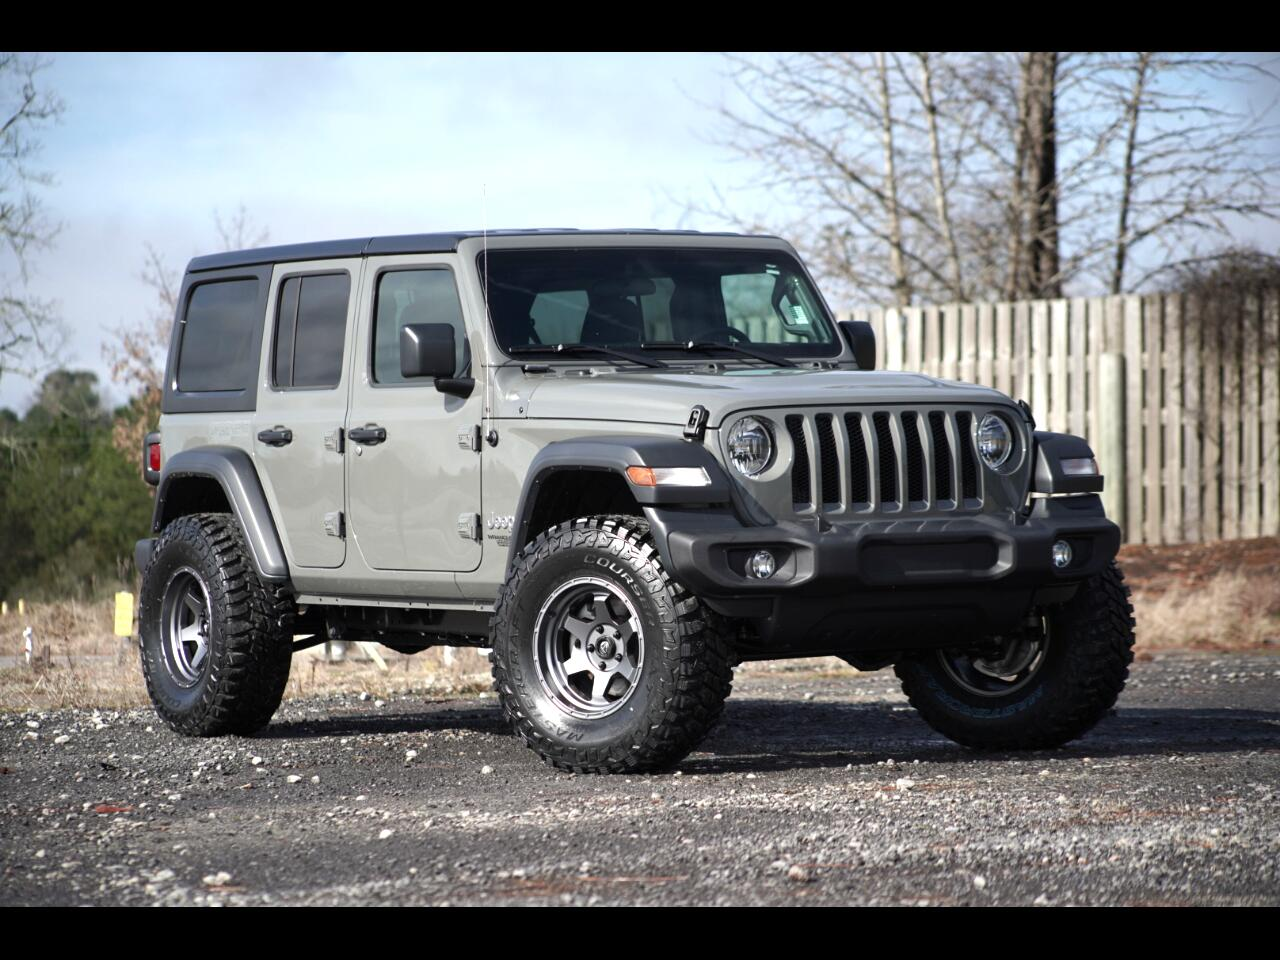 2018 Jeep Wrangler Unlimited Sting Ray Grey Rare Color JL Lifted Hard Top 4wd V